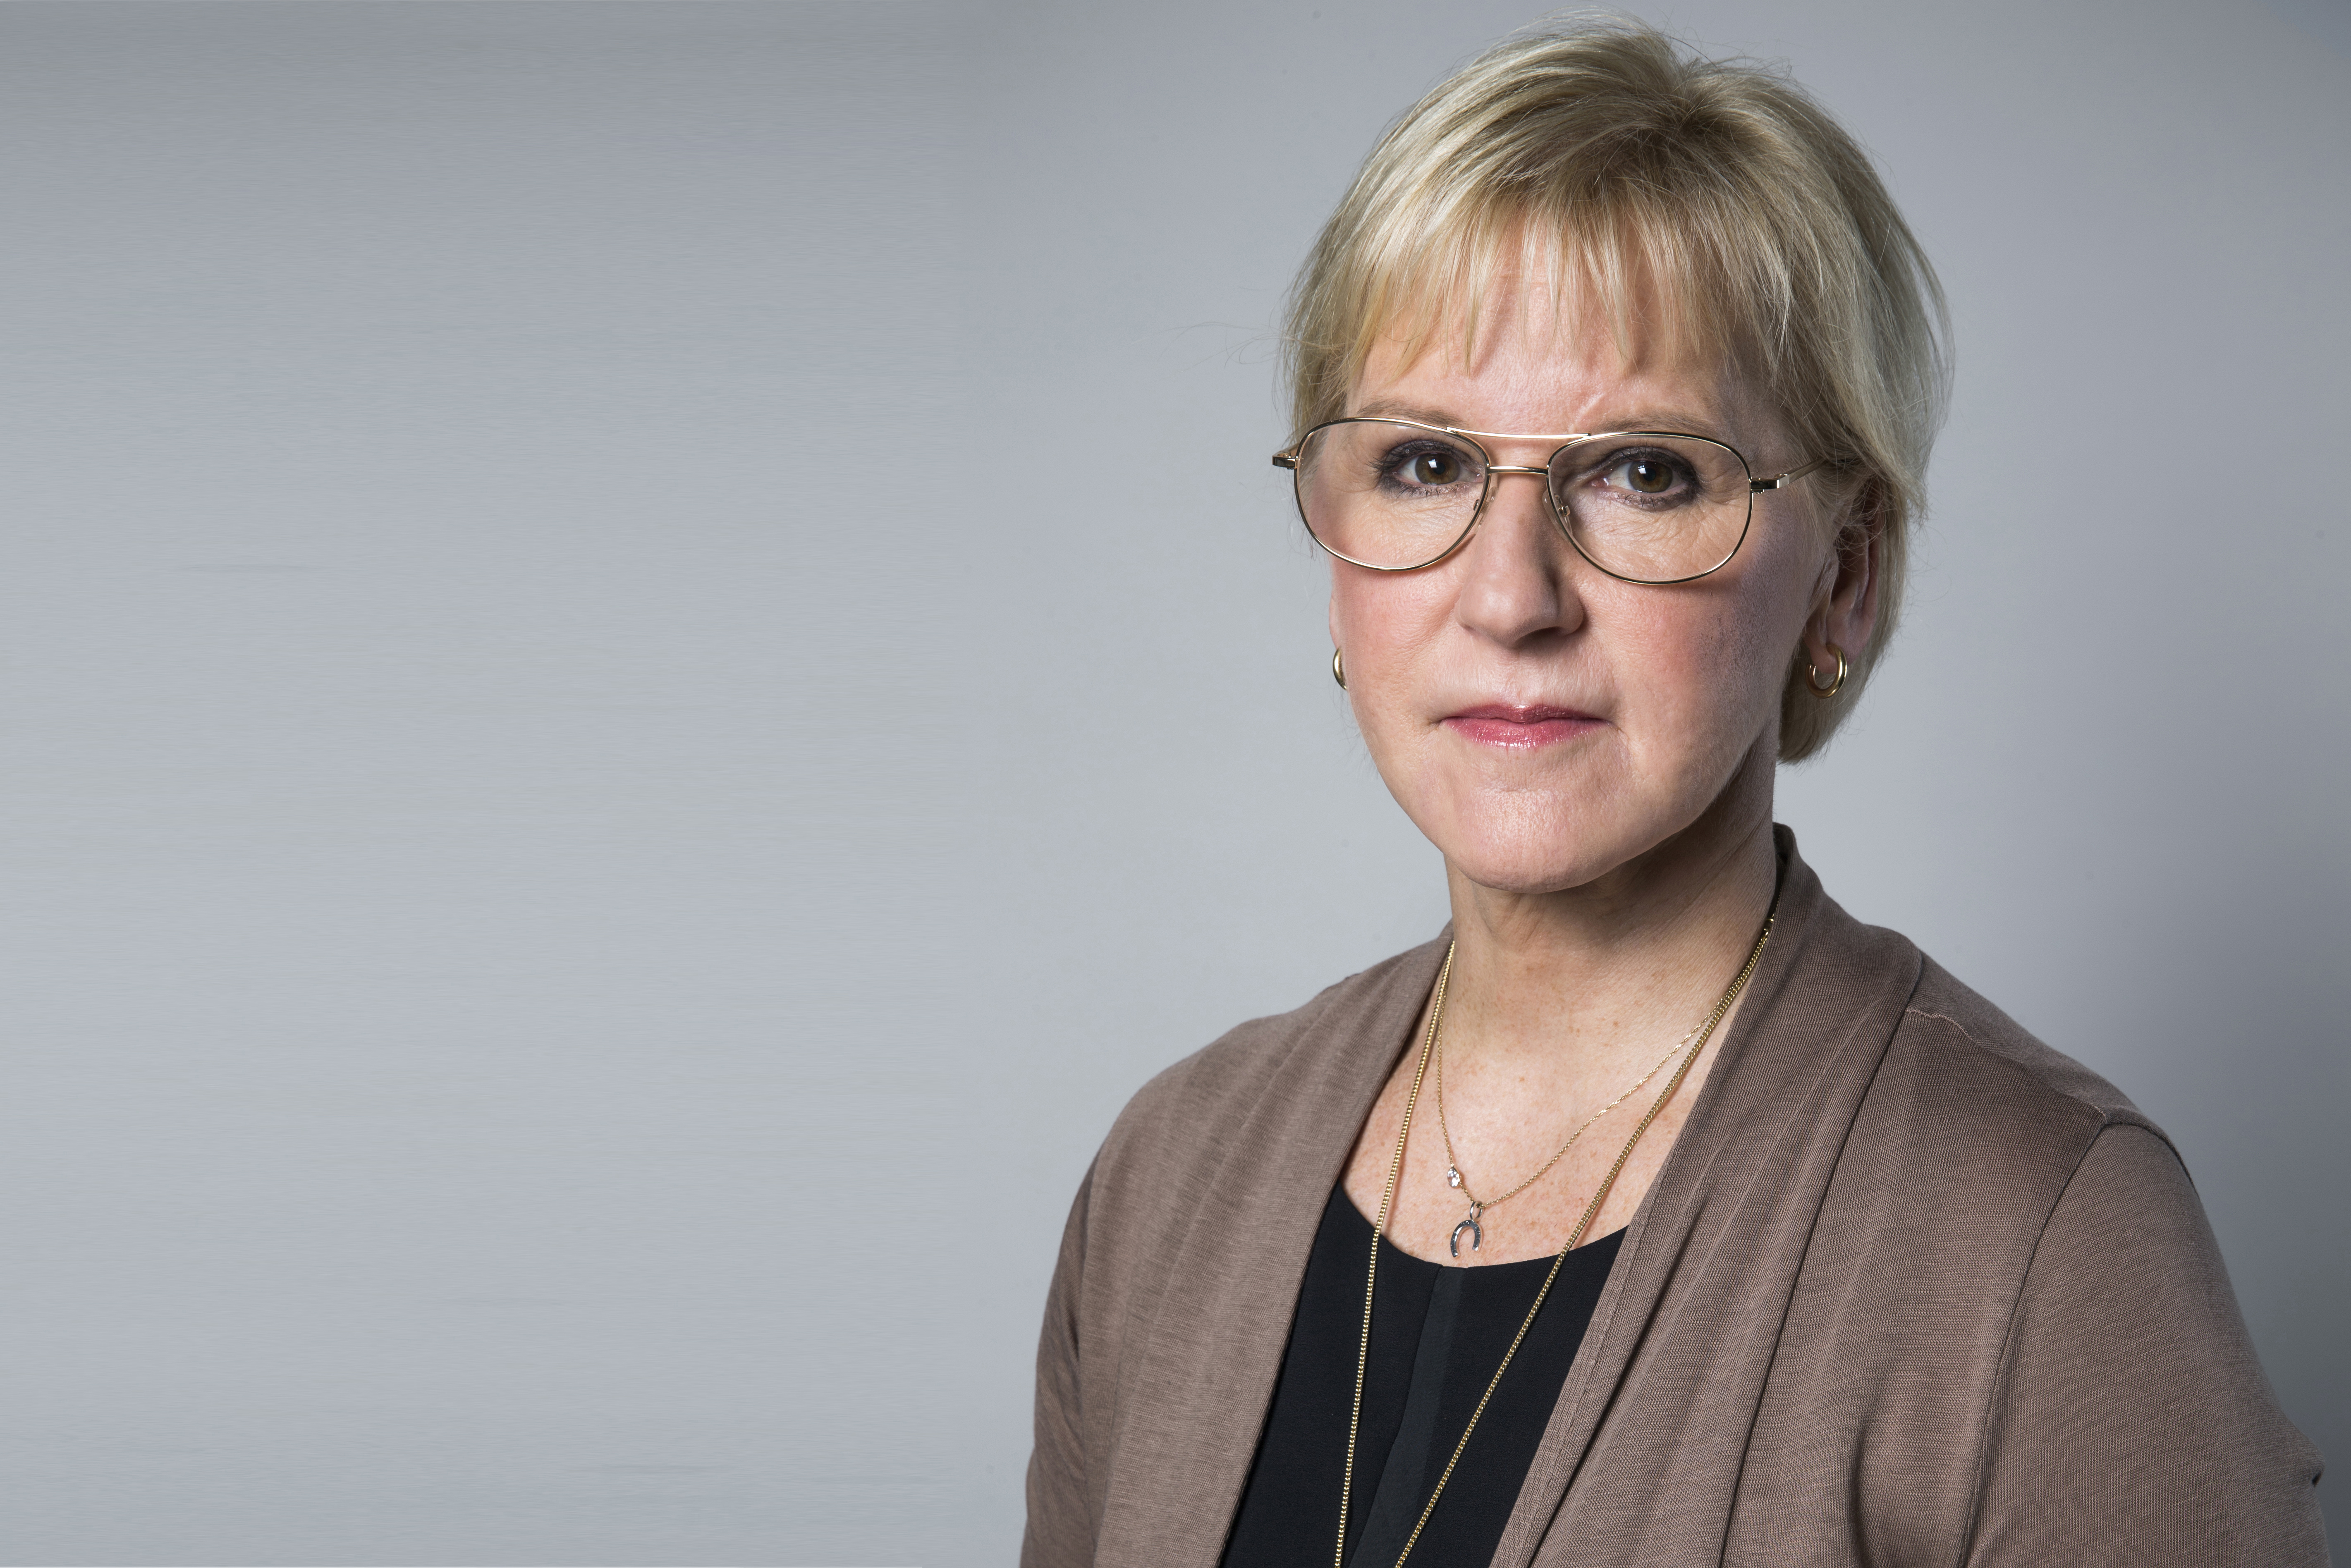 cv margot wallstr u00f6m